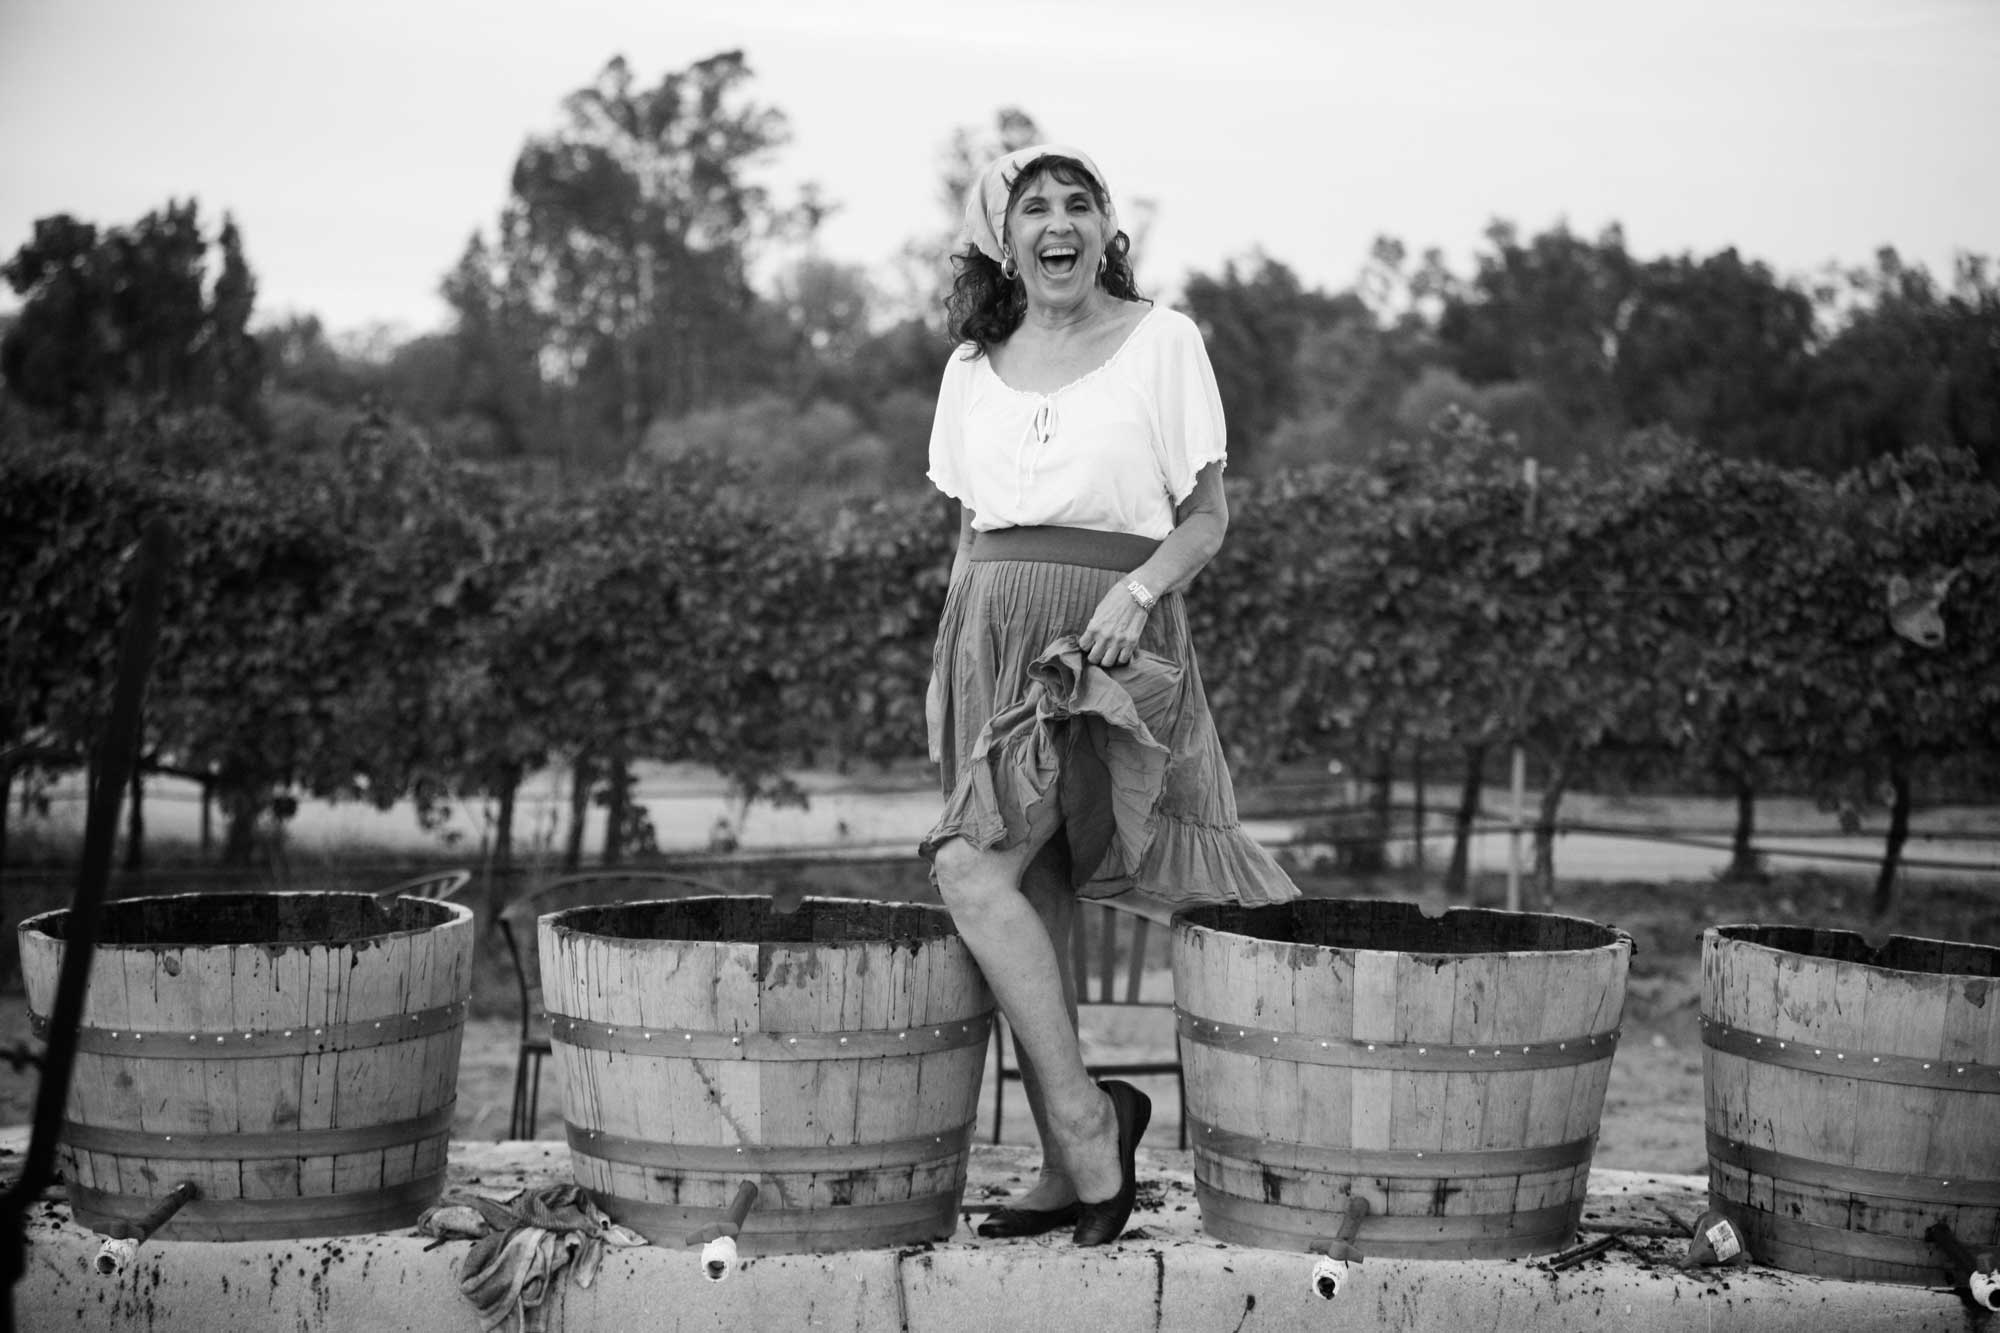 crush,grape stomp,vineyards,wine barrels,kegs,italian woman,60 year old